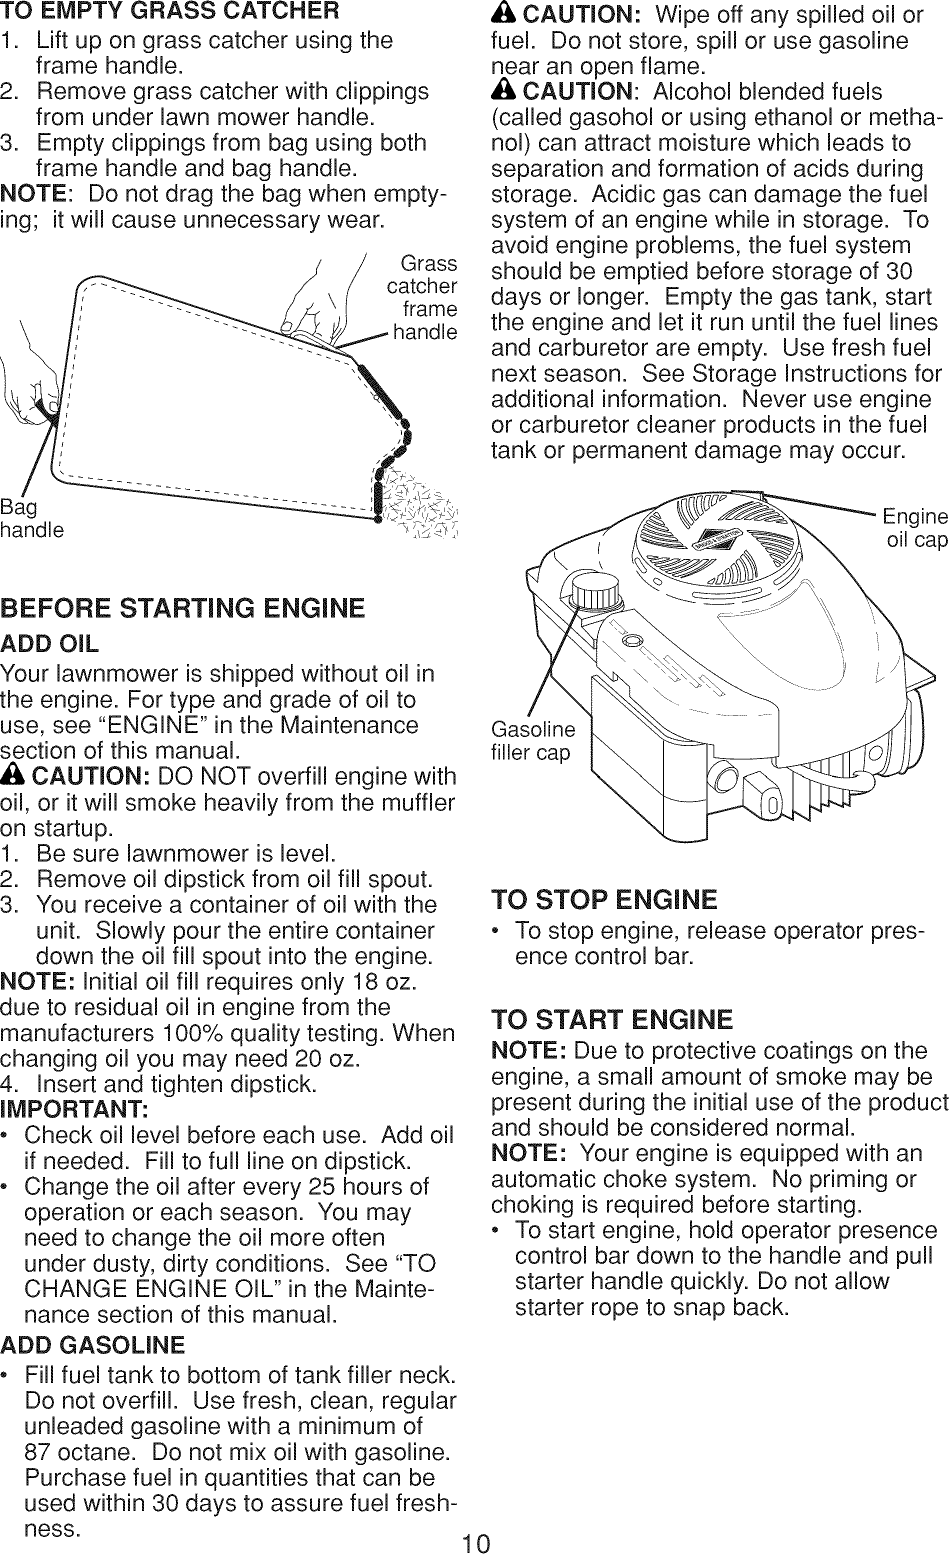 medium resolution of pull start engine diagram